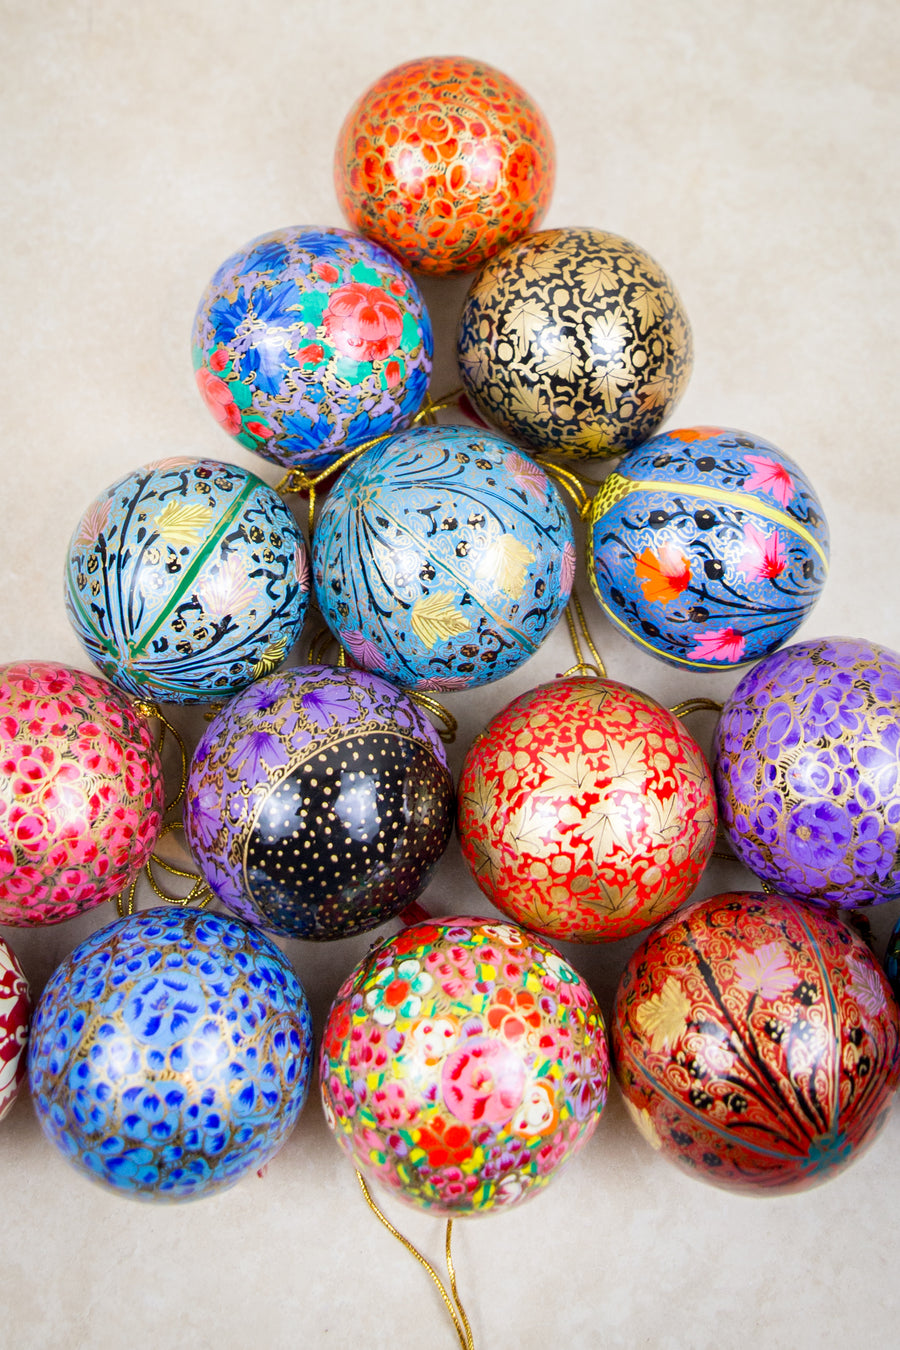 Handmade and hand painted decorative ornaments